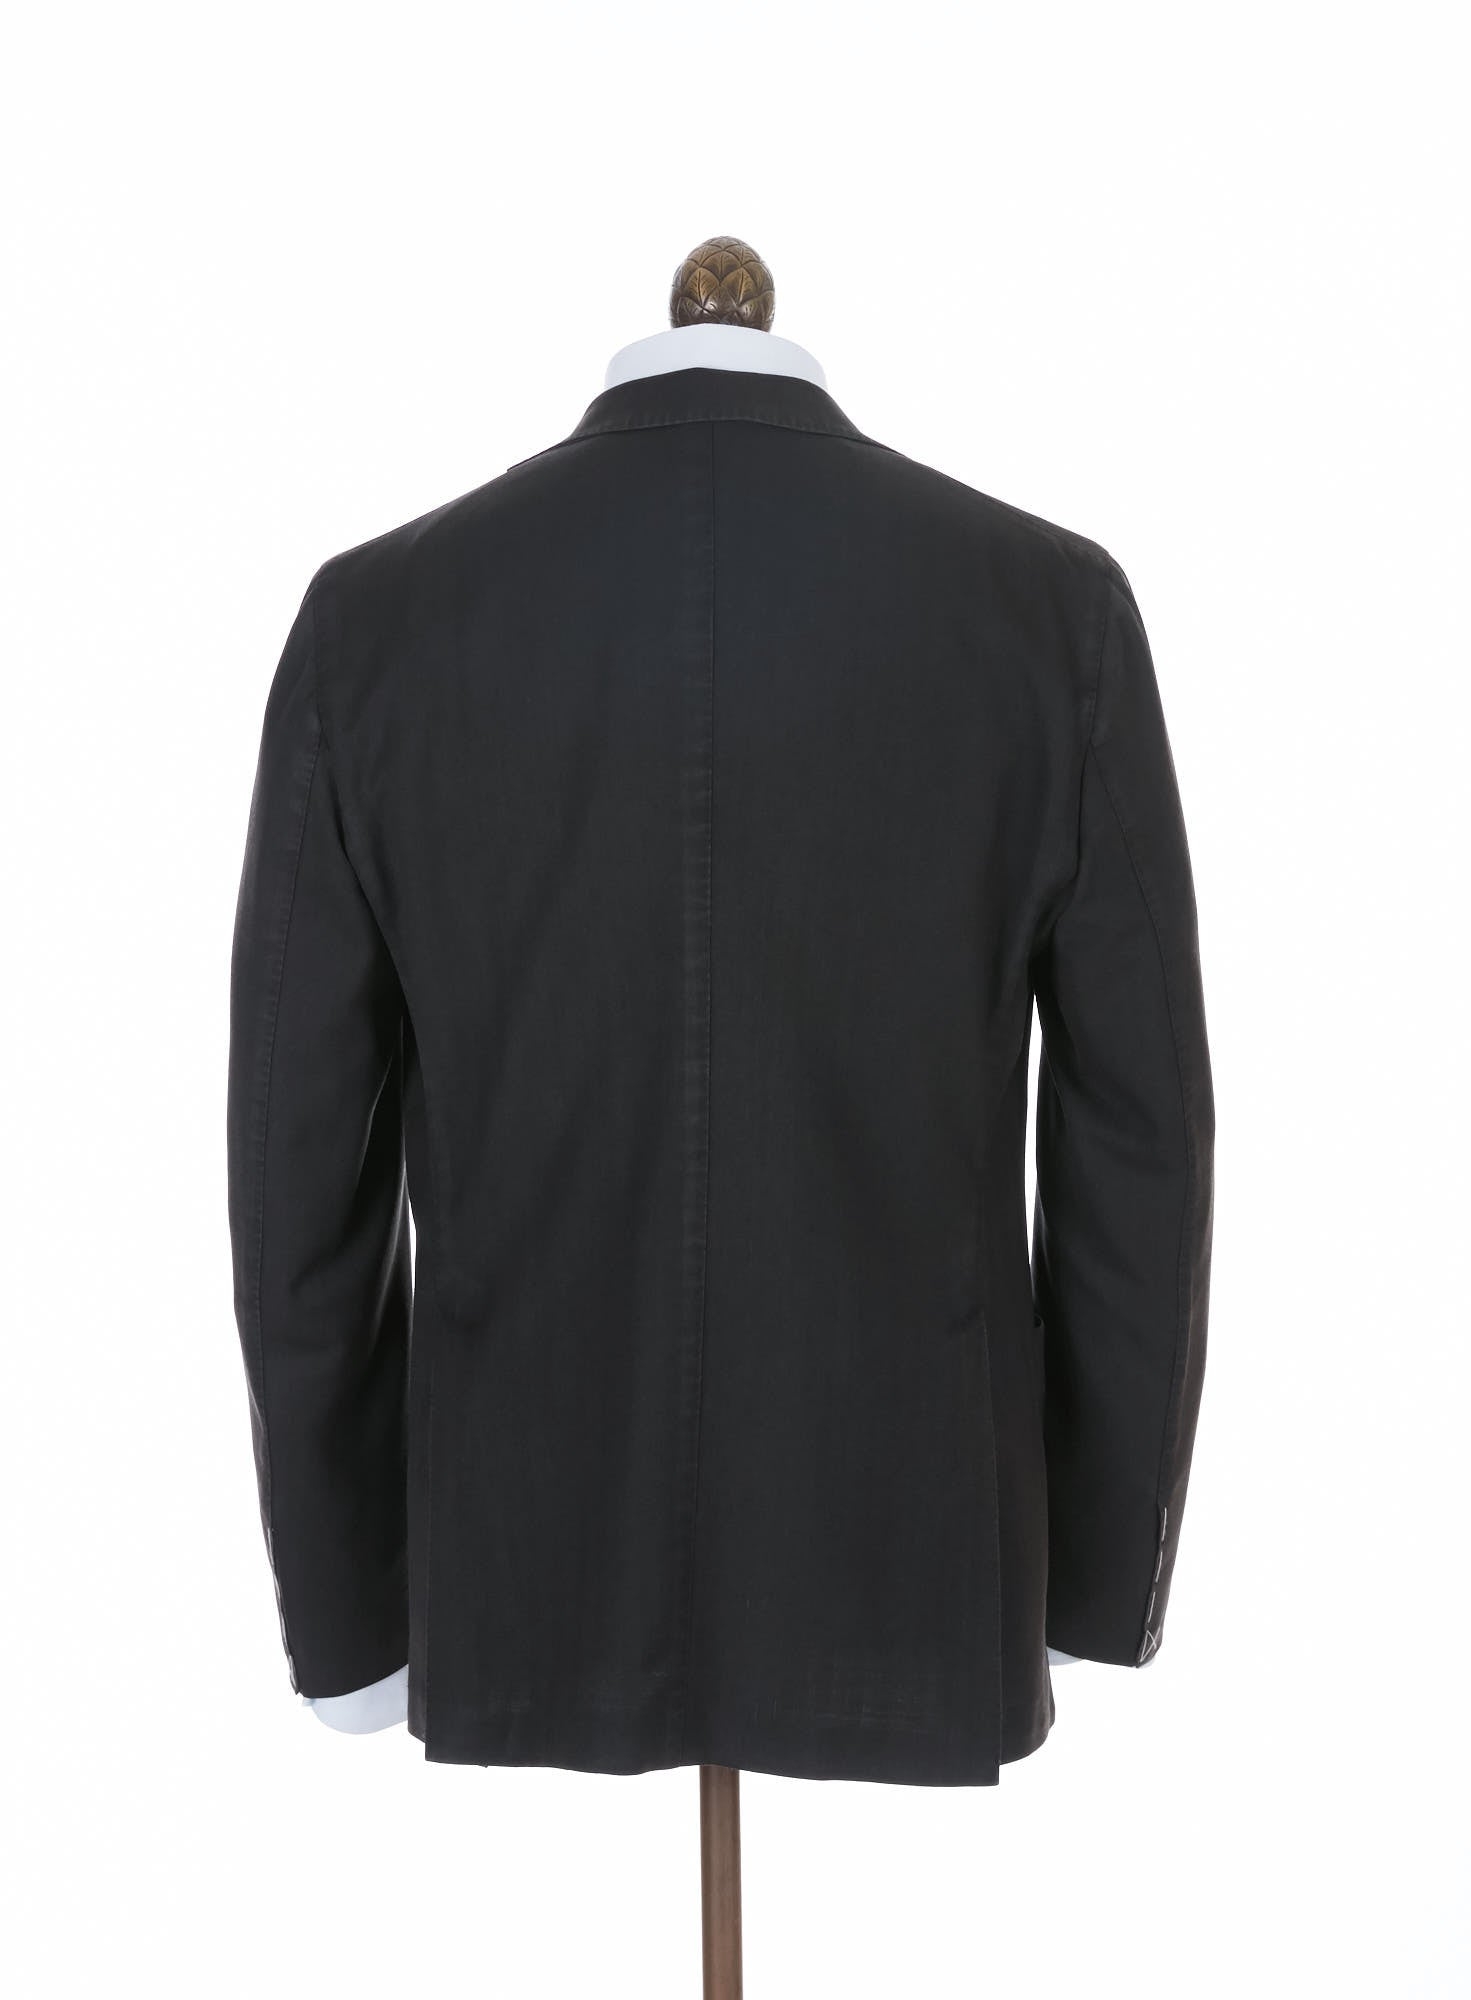 Boglioli Black Wool Herringbone K-Jacket - N2902J Back